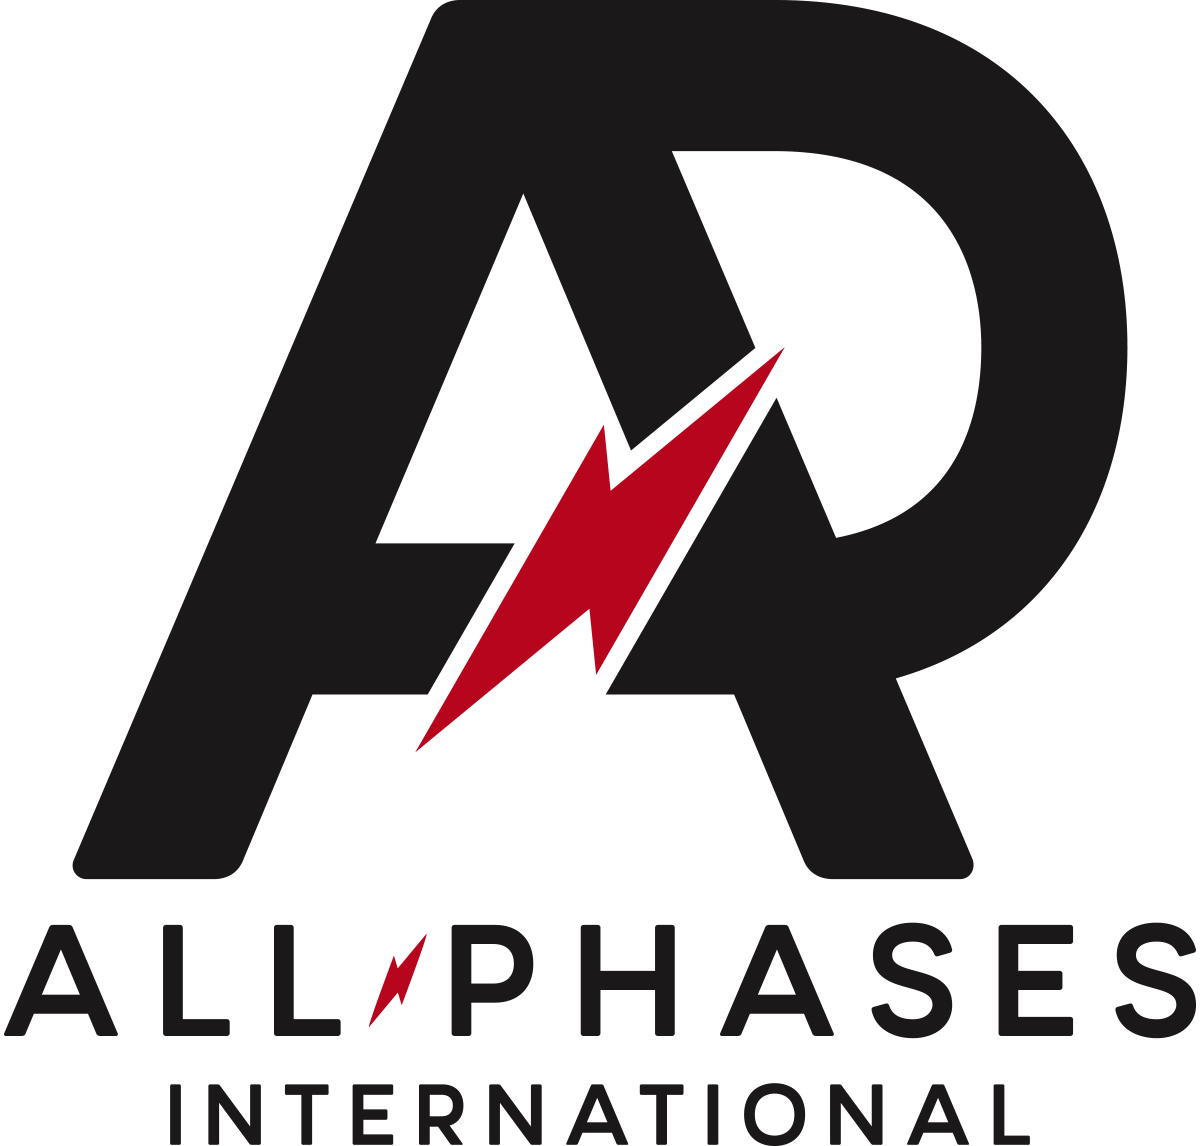 All Phases International